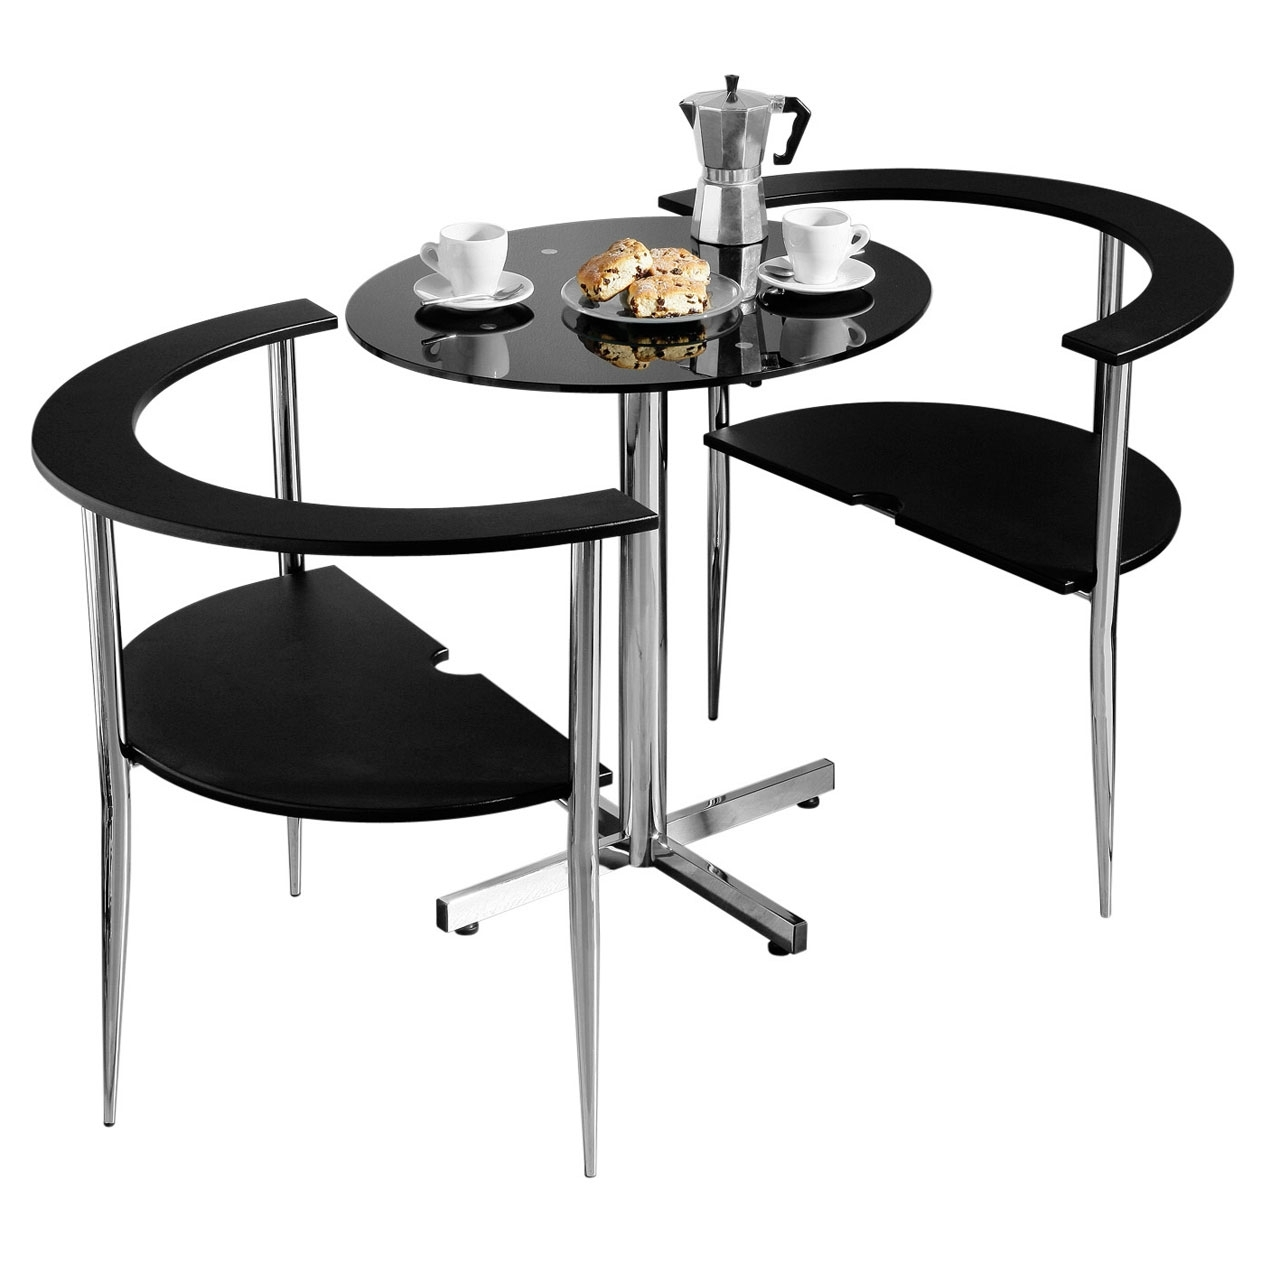 3Pc Round Love Dining Set Black Tempered Glass Table Top 2 Chairs with regard to 2018 Two Chair Dining Tables